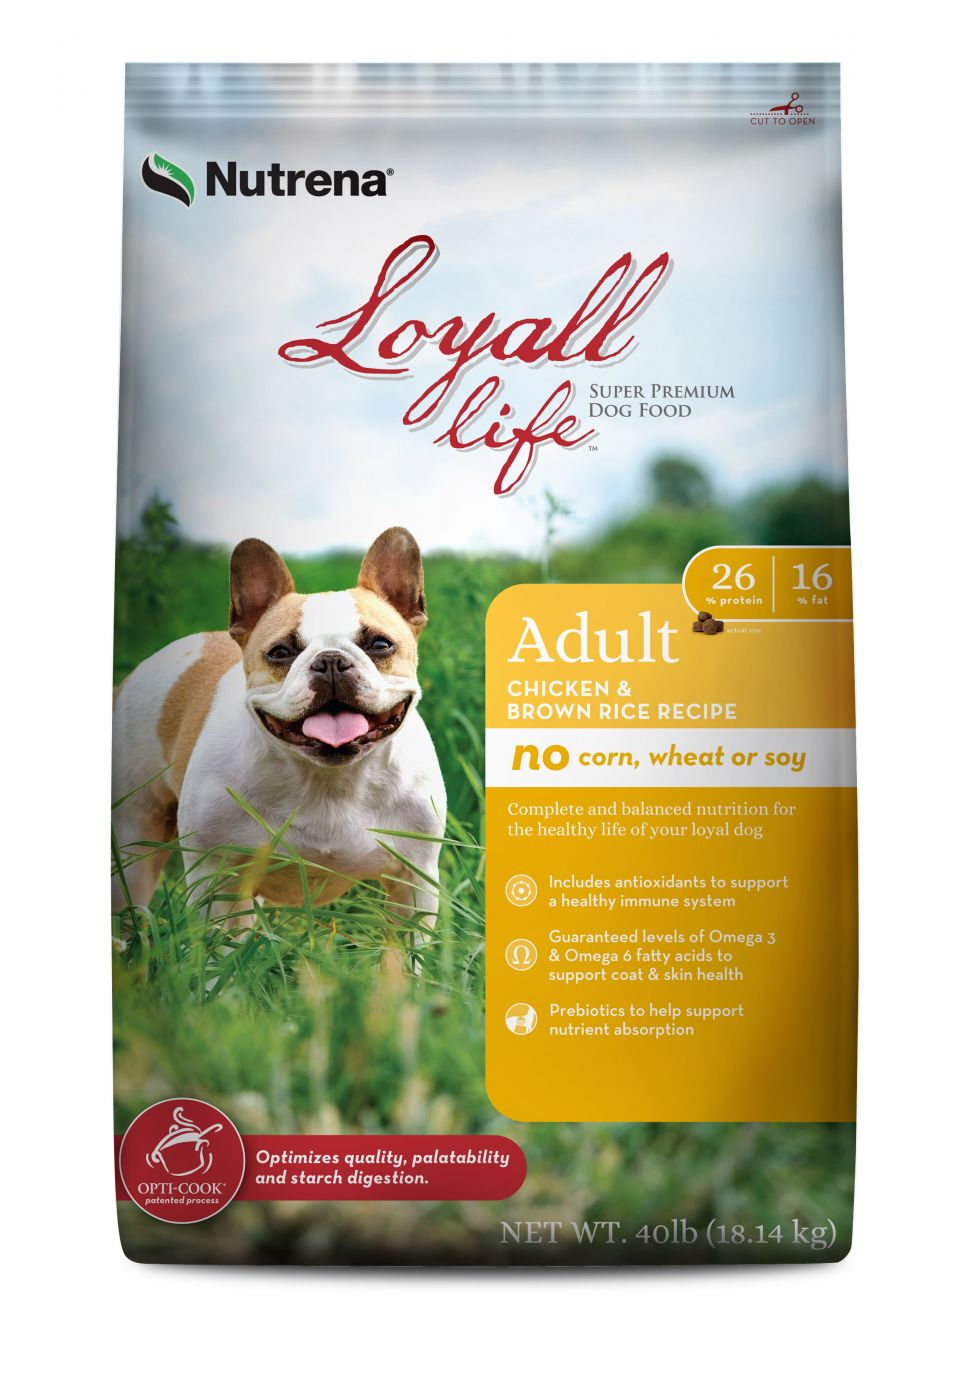 40 Loyall Adult Chicken and Rice copy